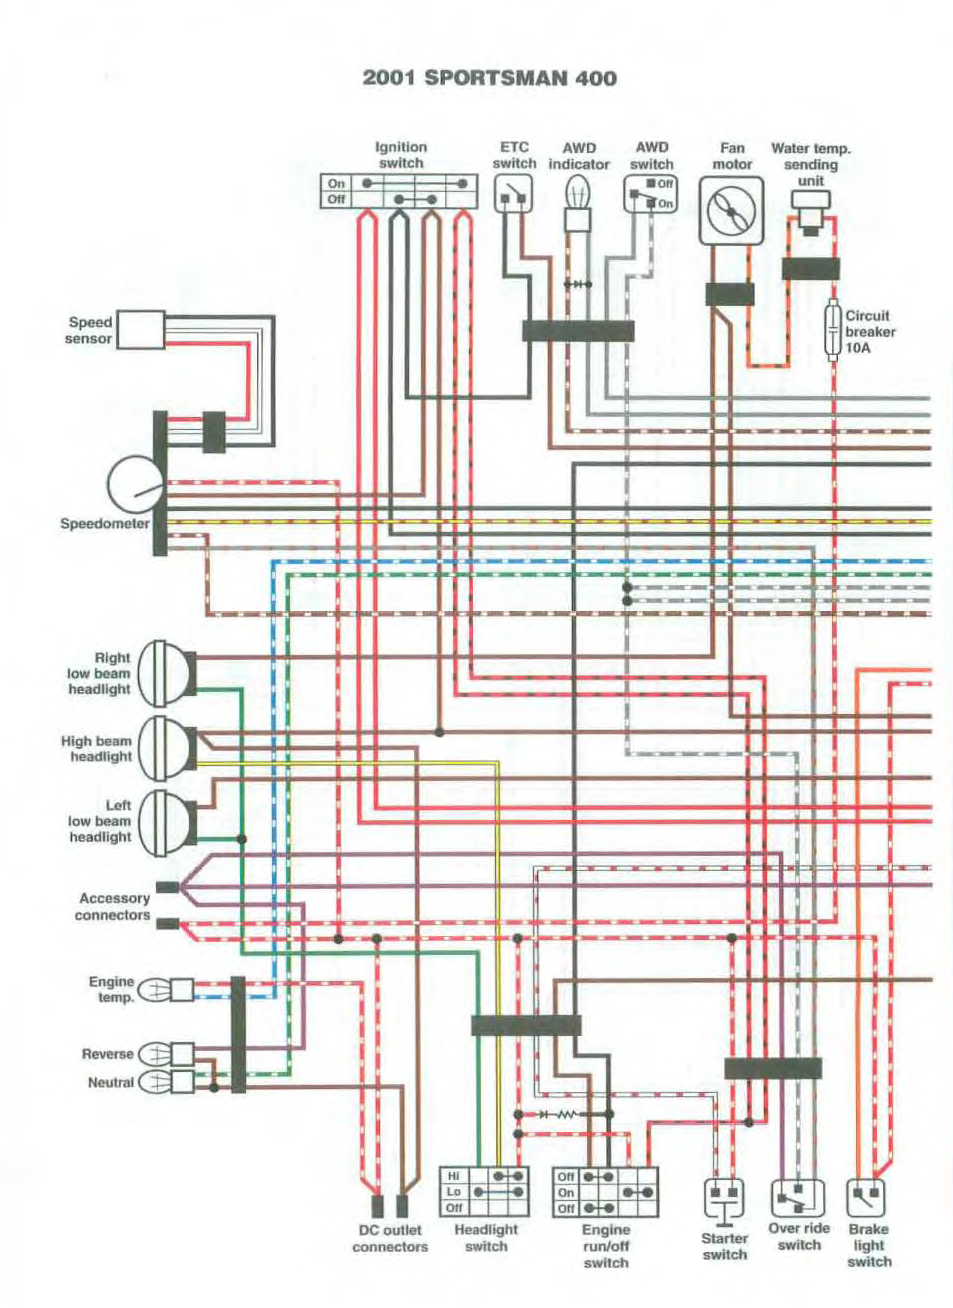 [QNCB_7524]  Sportsman 500 wiring diagram | Polaris ATV Forum | Wiring Diagram Polaris 2005 500 Ho |  | Polaris ATV Forum